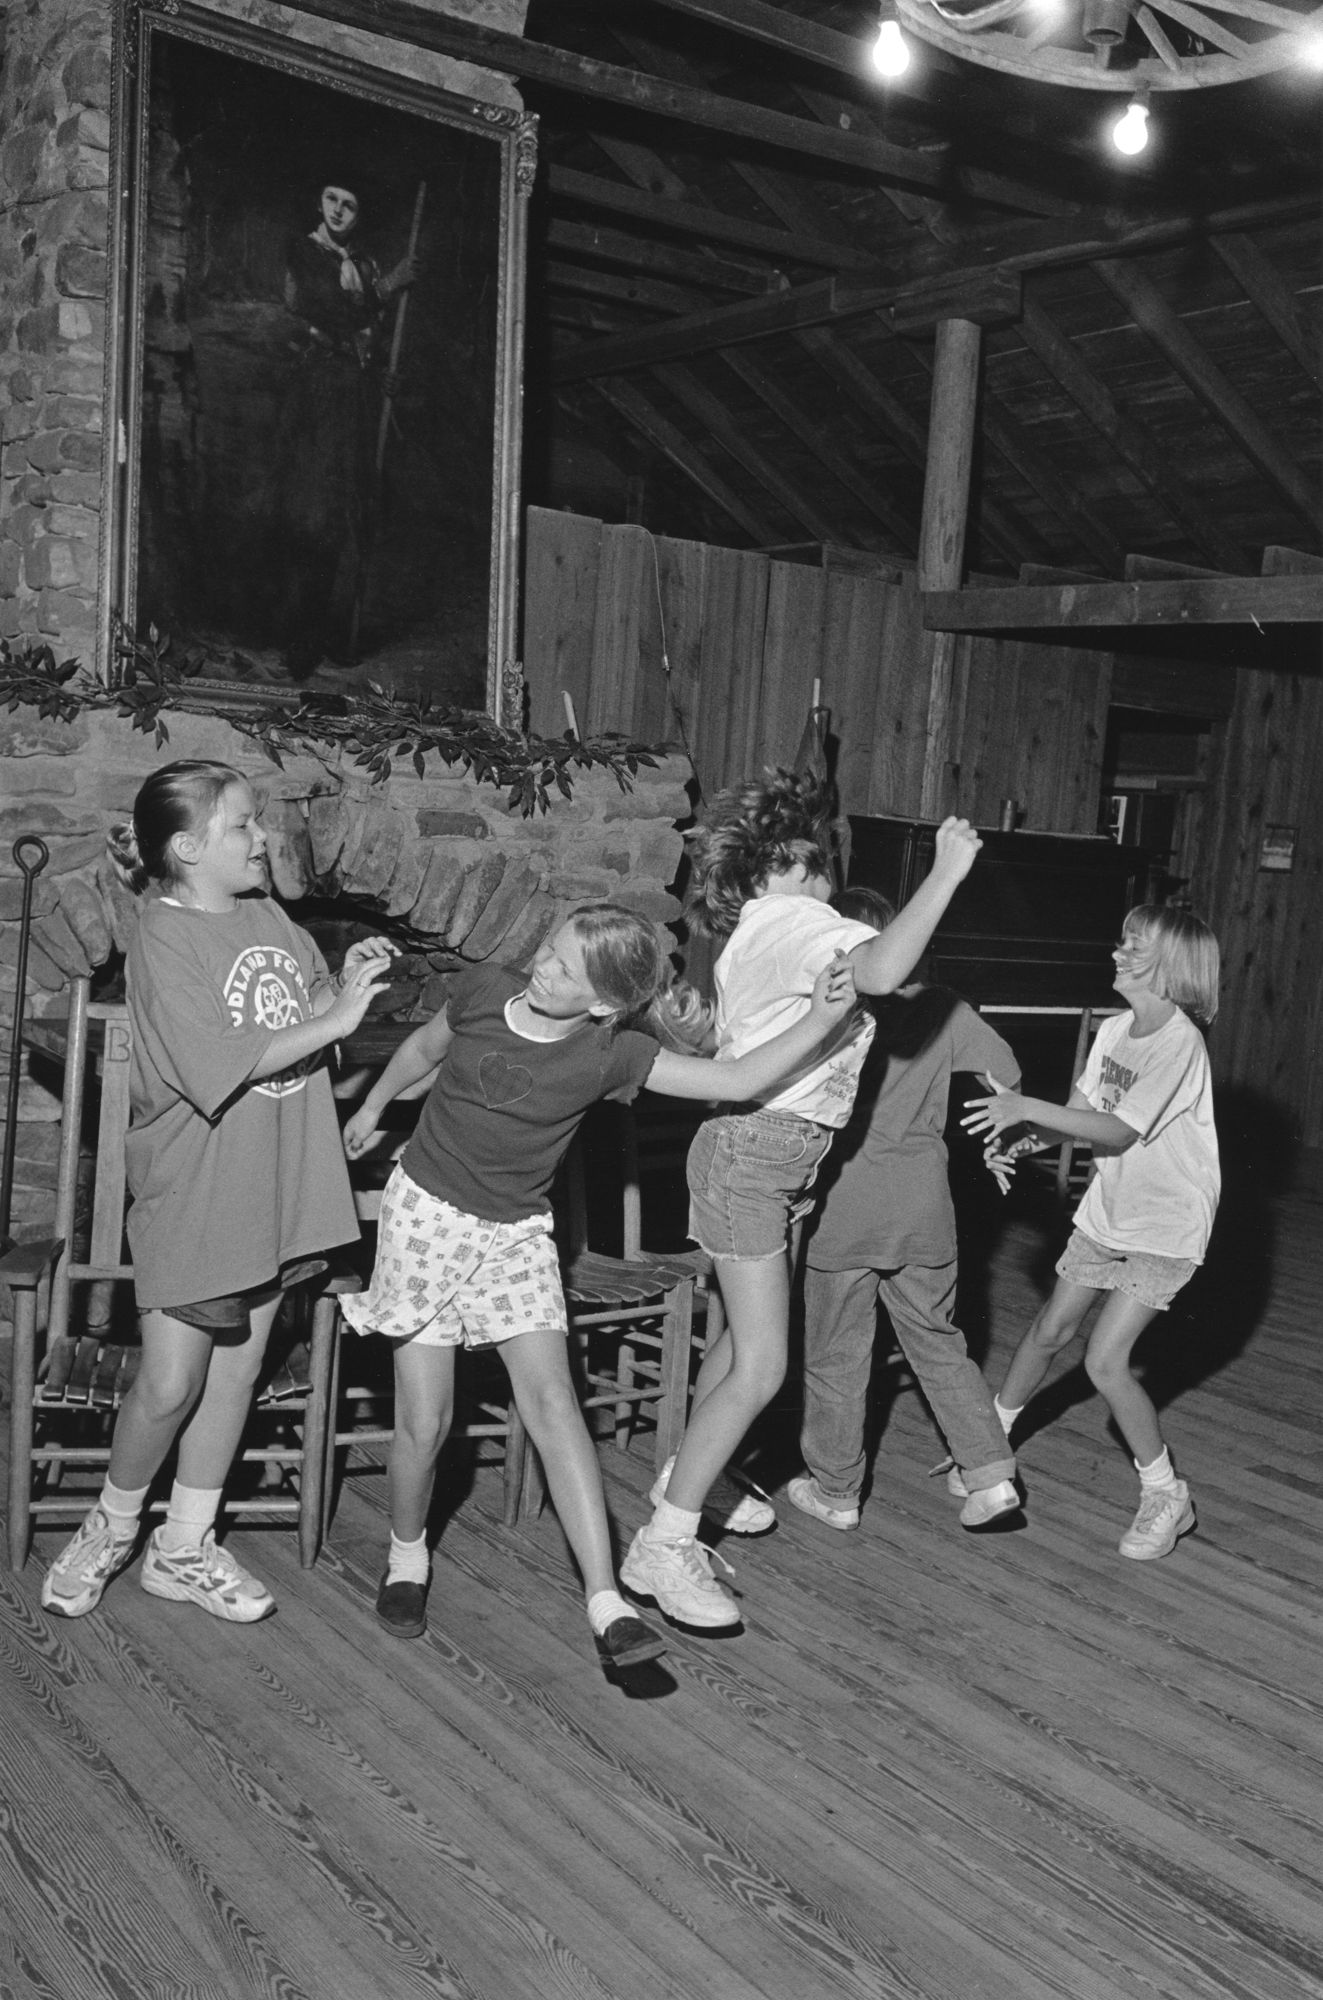 Summer Camp USA 1986 and 1997North Carolina, Massachusetts, Wisconsin, Illinois, and Georgia